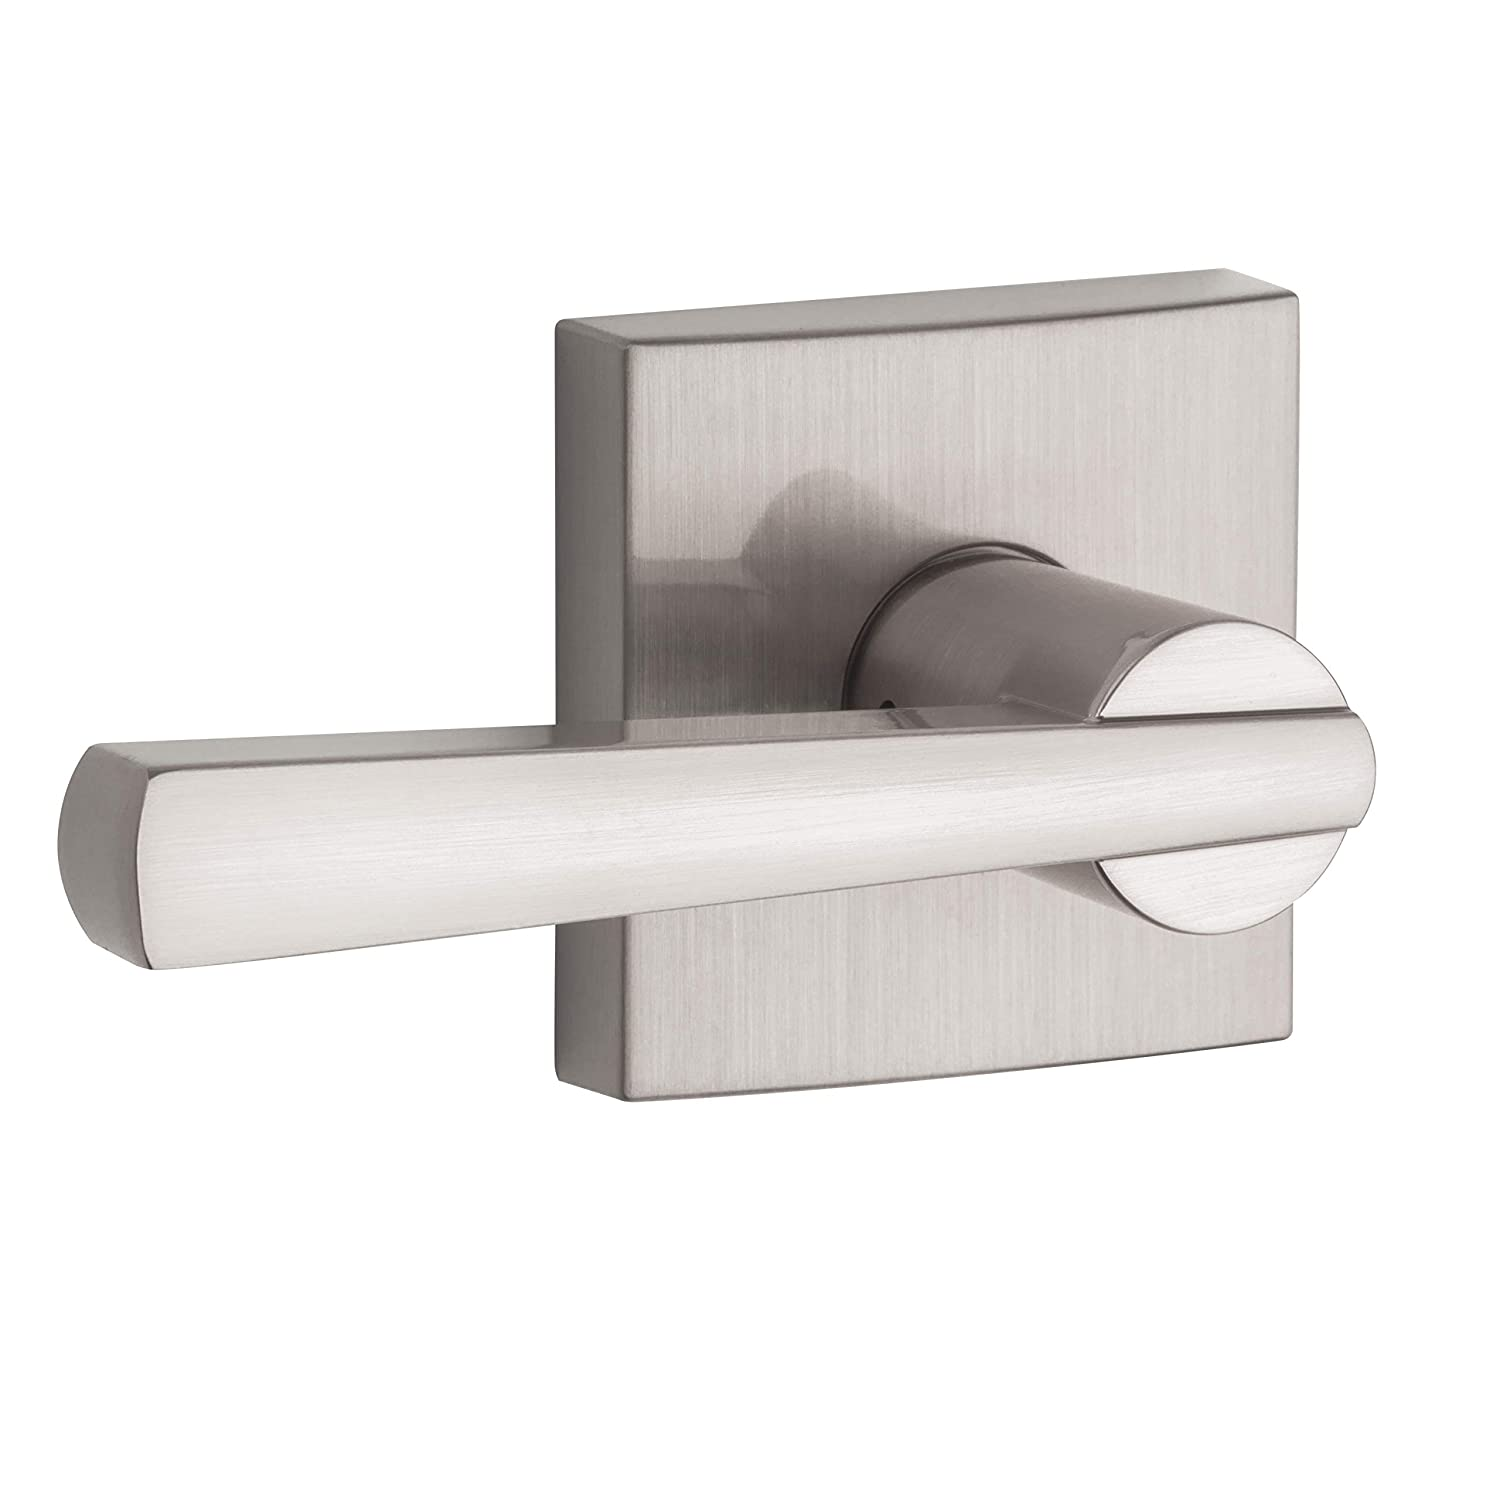 Baldwin Spyglass Passage Lever for Hall or Closet Door Handle in Satin Nickel, Prestige Series with a Modern Contemporary Slim Design for Interior Doors